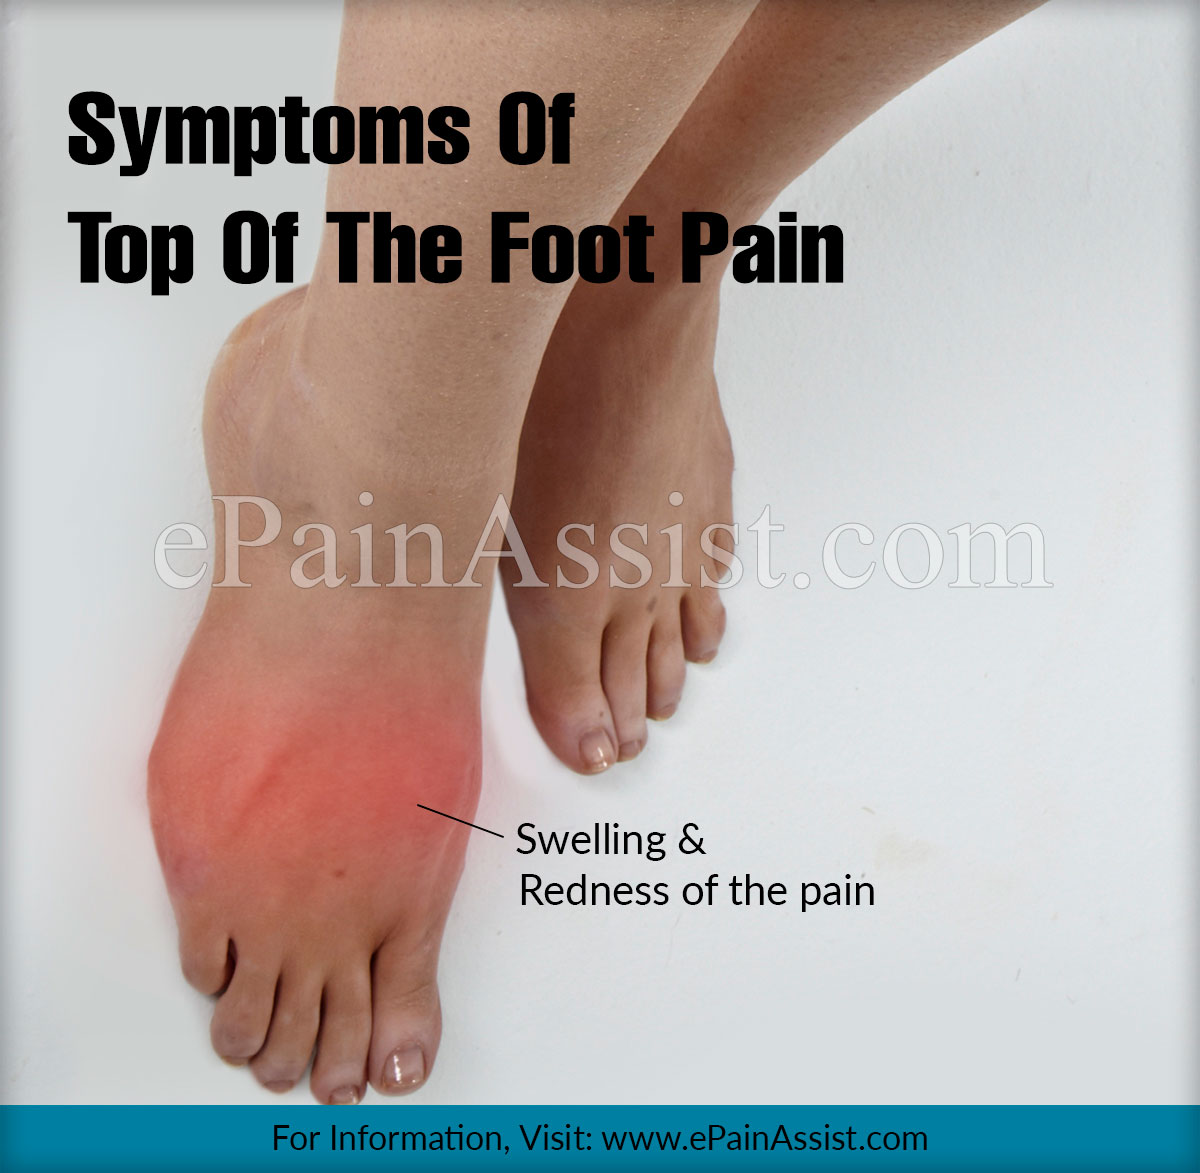 Symptoms Of Top Of The Foot Pain